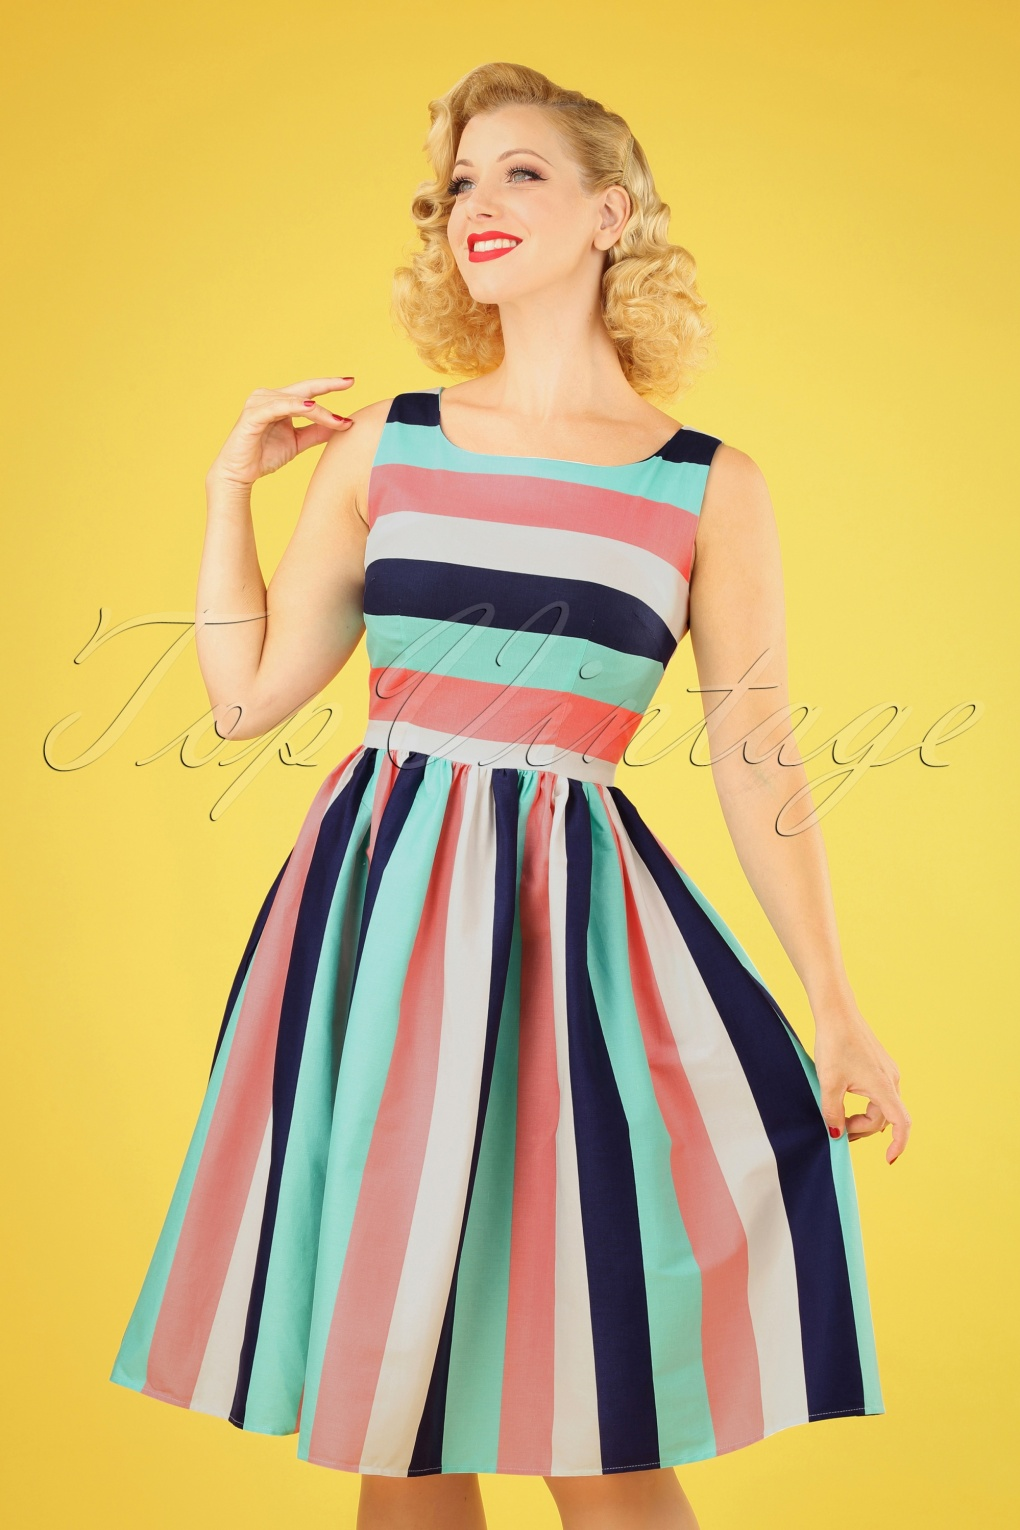 Vintage Cruise Outfits, Vacation Clothing 50s Candice Striped Swing Dress in Seaside Stripes �56.58 AT vintagedancer.com